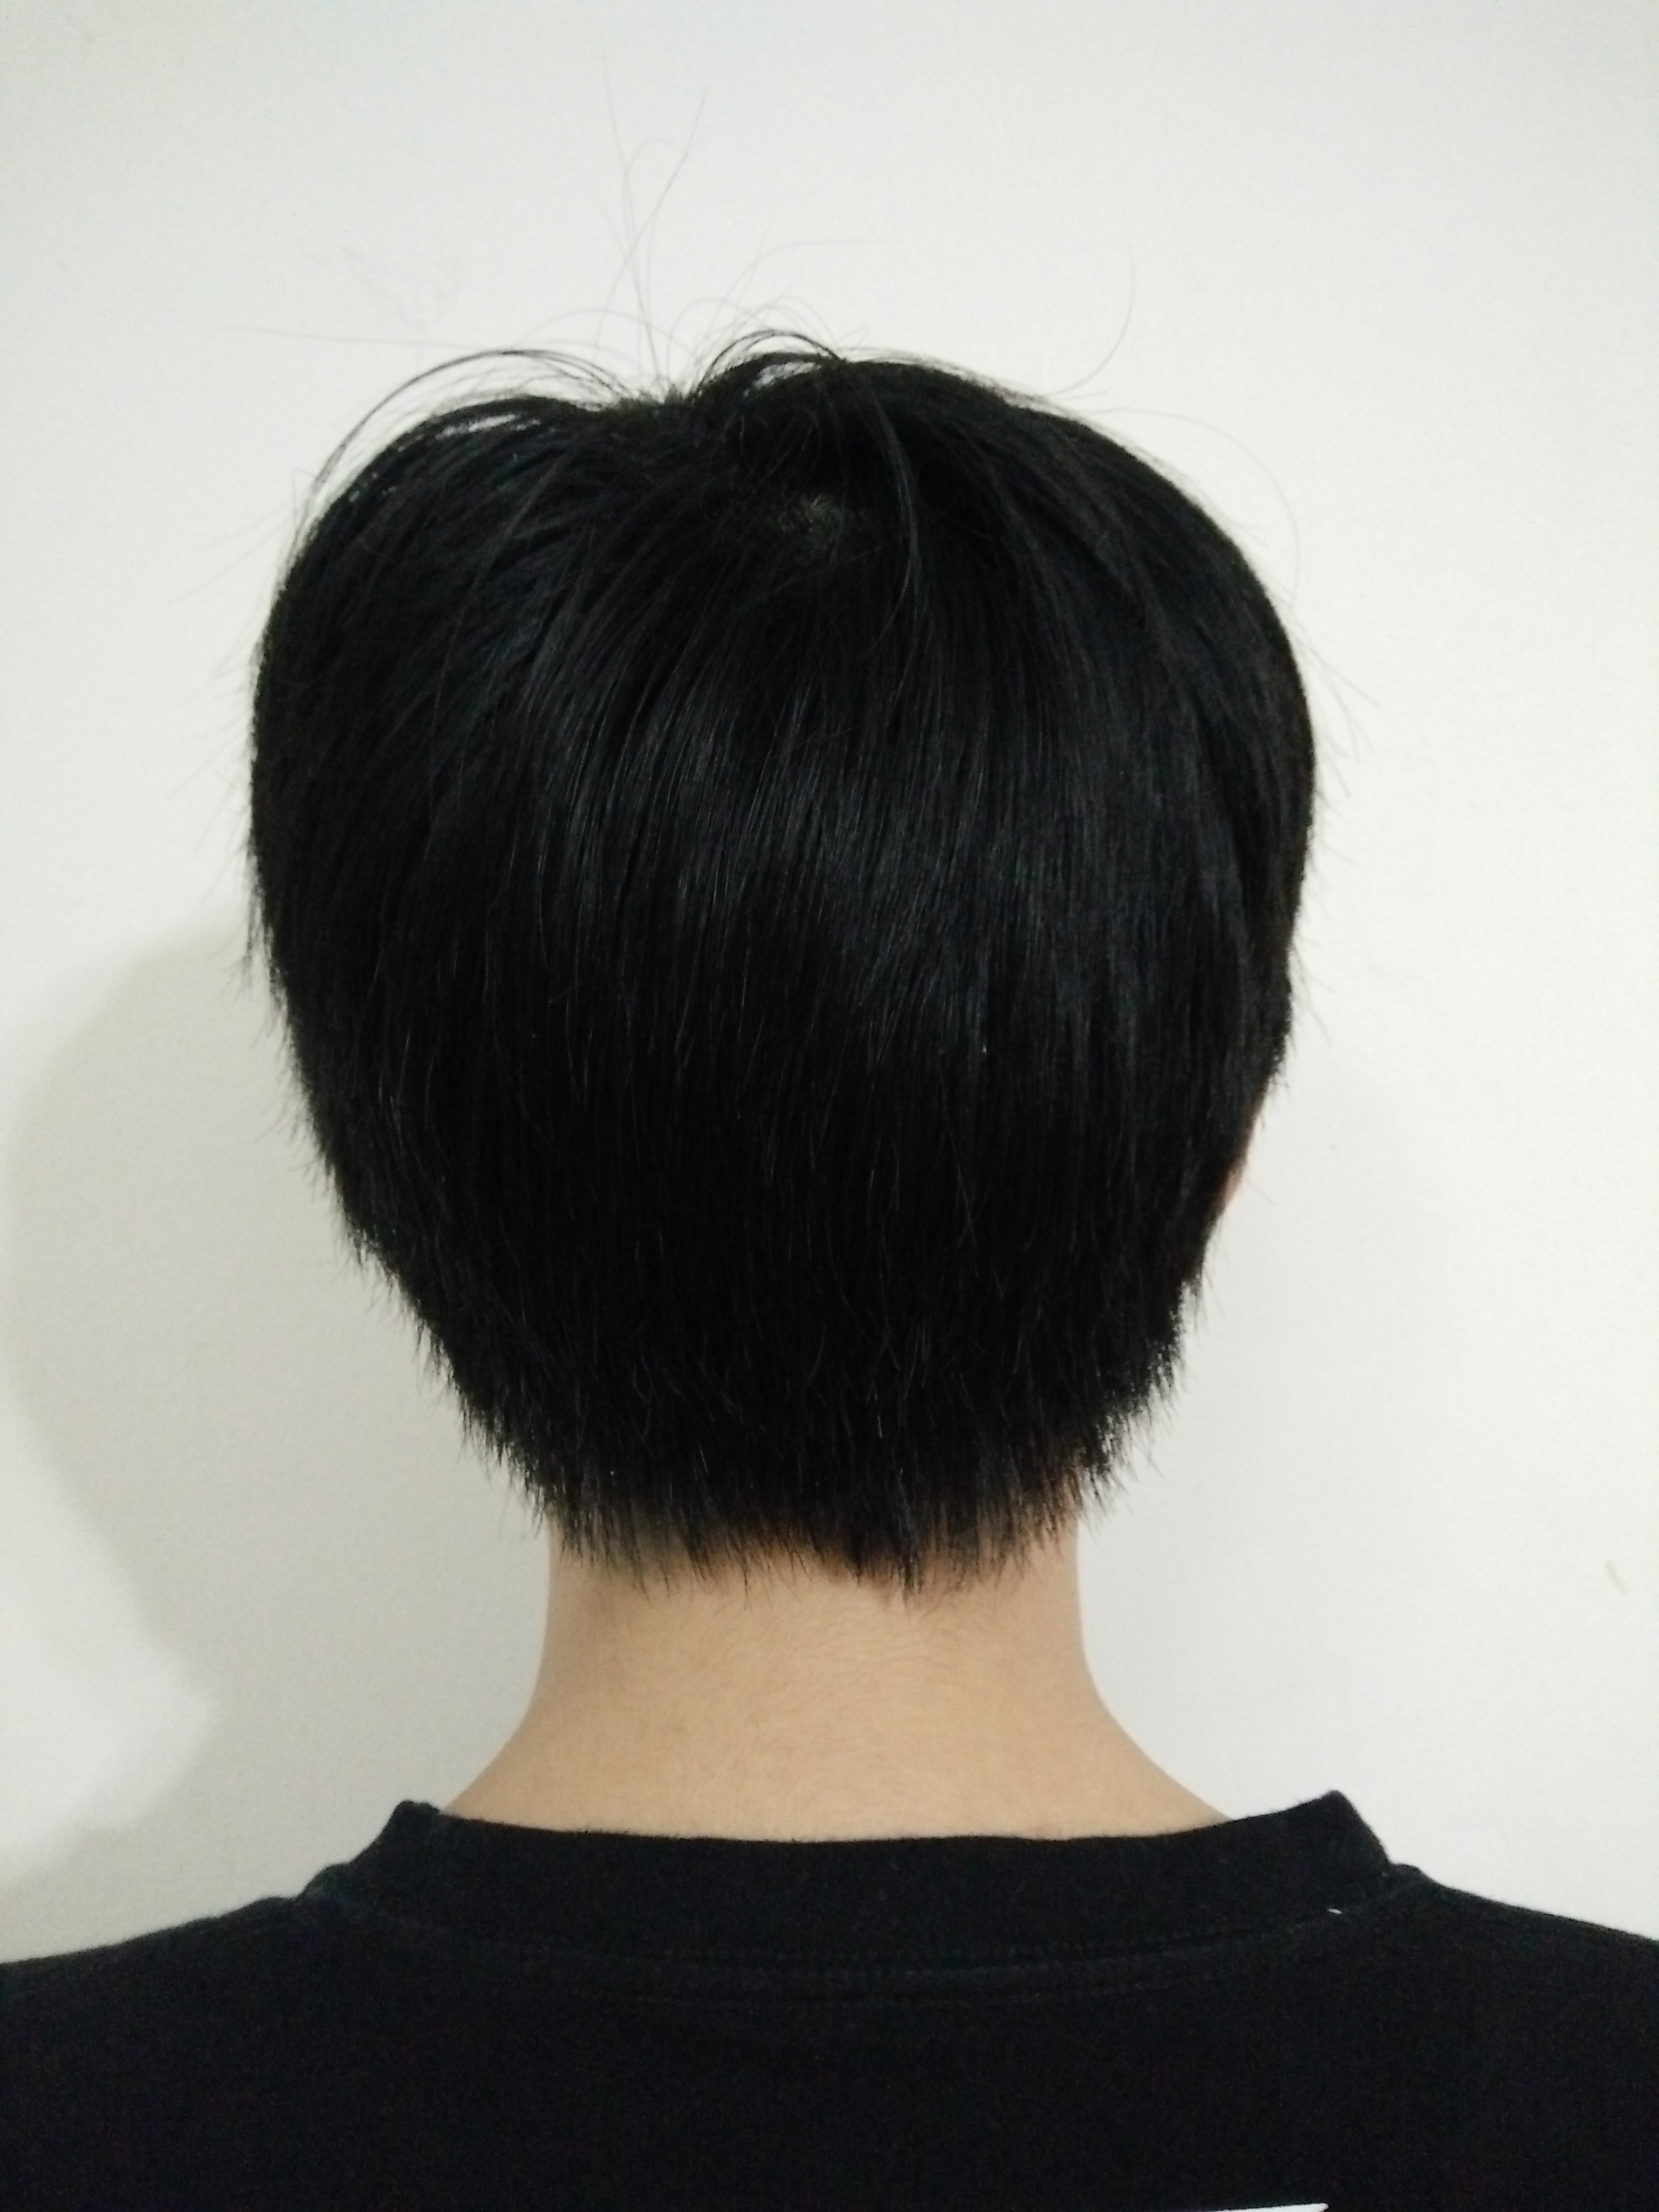 Fileboy With Short Black Hair Rear Viewg Wikimedia Commons